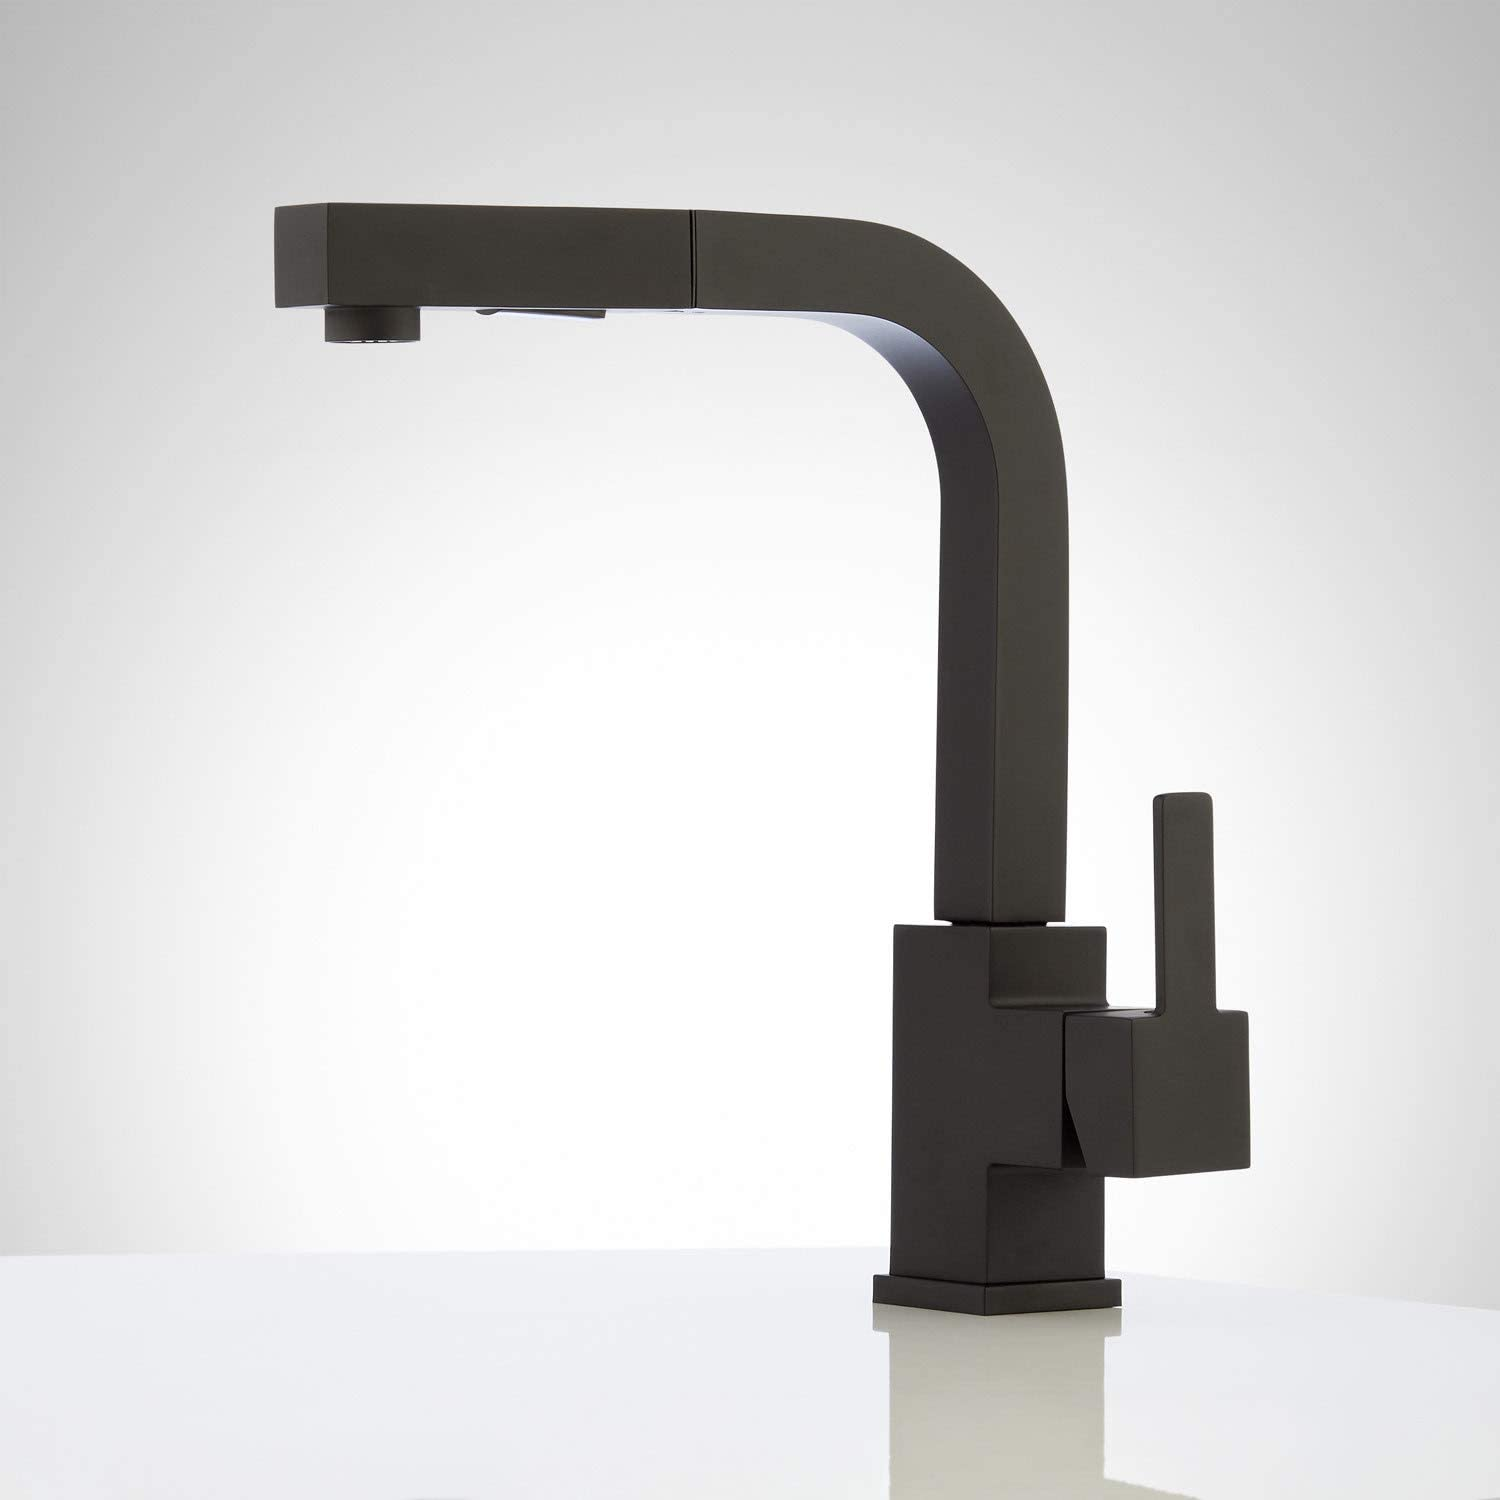 Signature Hardware 941493 Castor Single Hole Pull-Out Kitchen Faucet